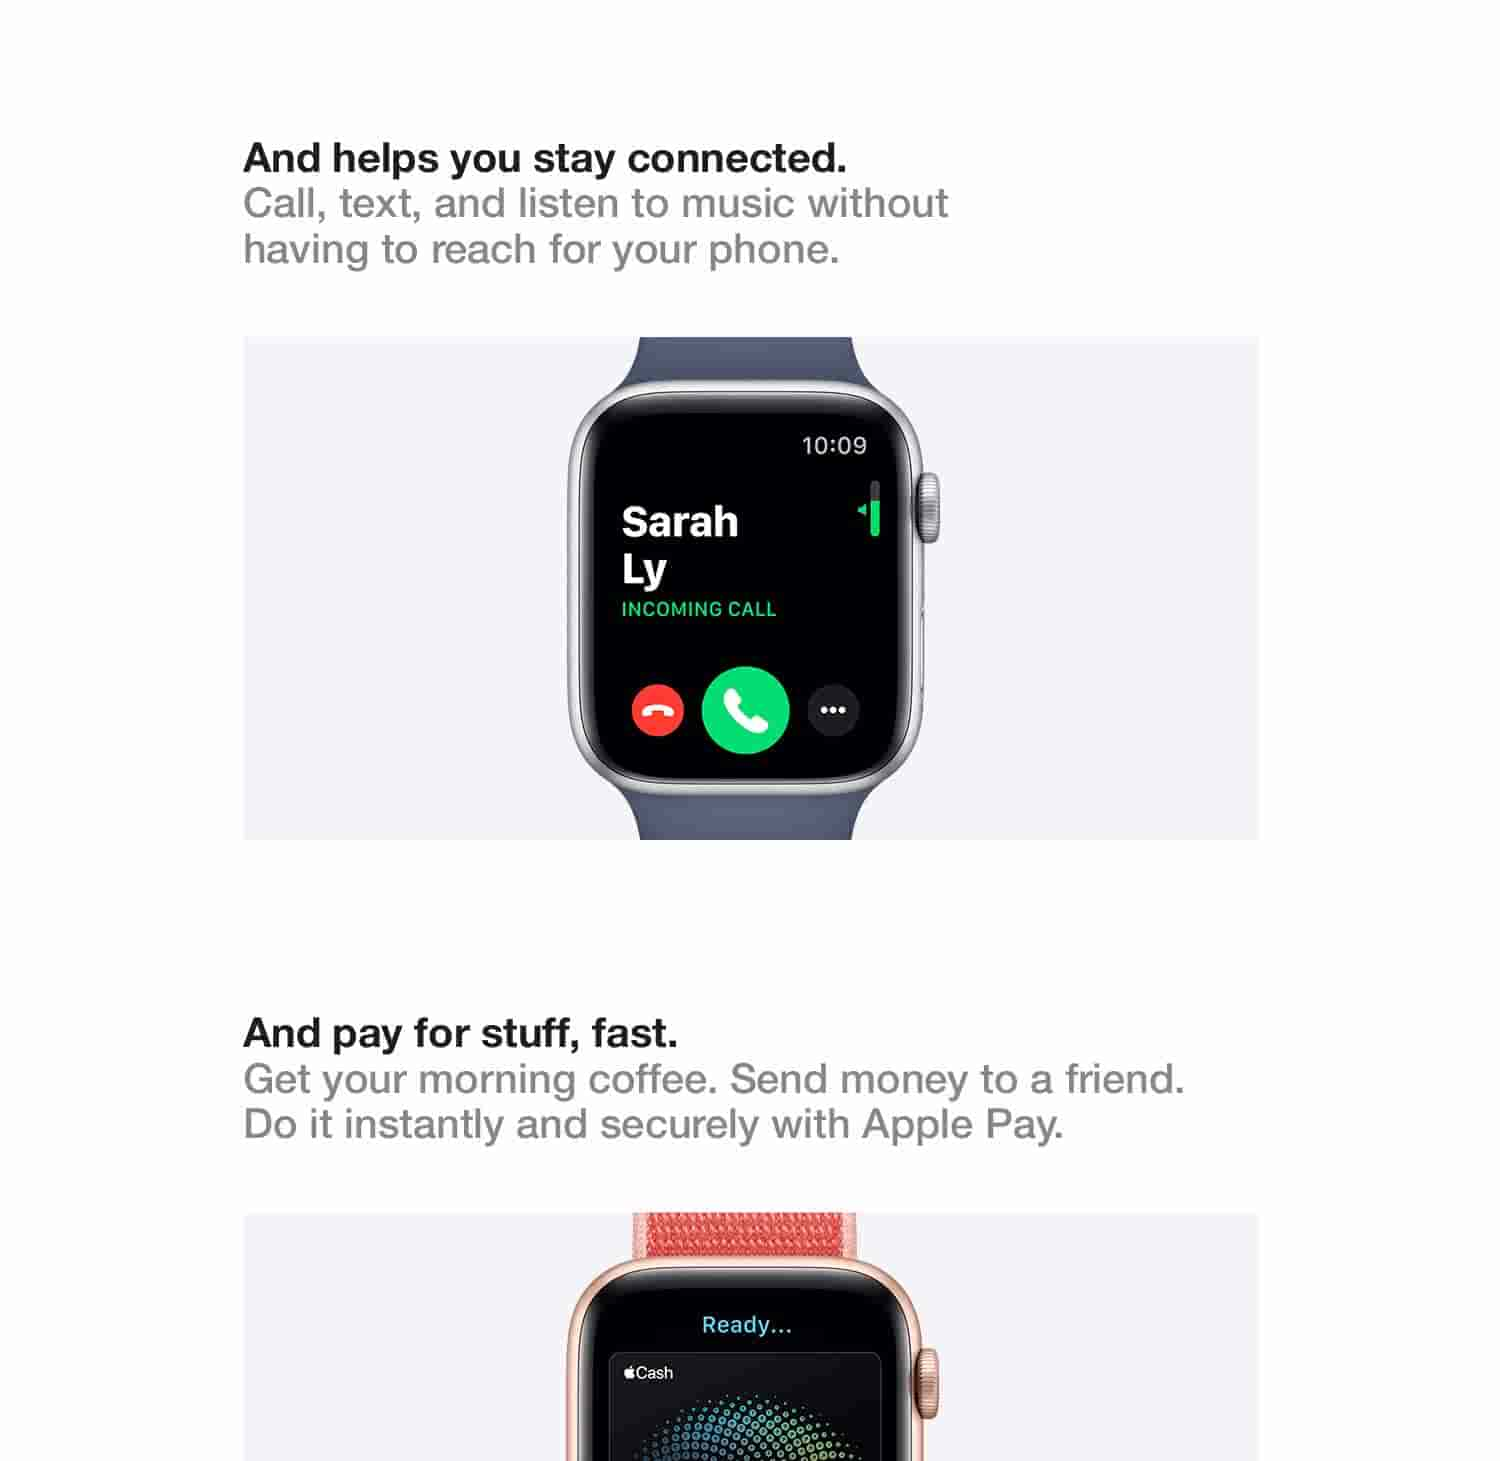 And helps you stay connected. Call, text, and listen to your music without having to reach for your phone. And pay for stuff, fast. Get your morning coffee. Send money to a friend. Do it instantly and securely with Apple Pay.